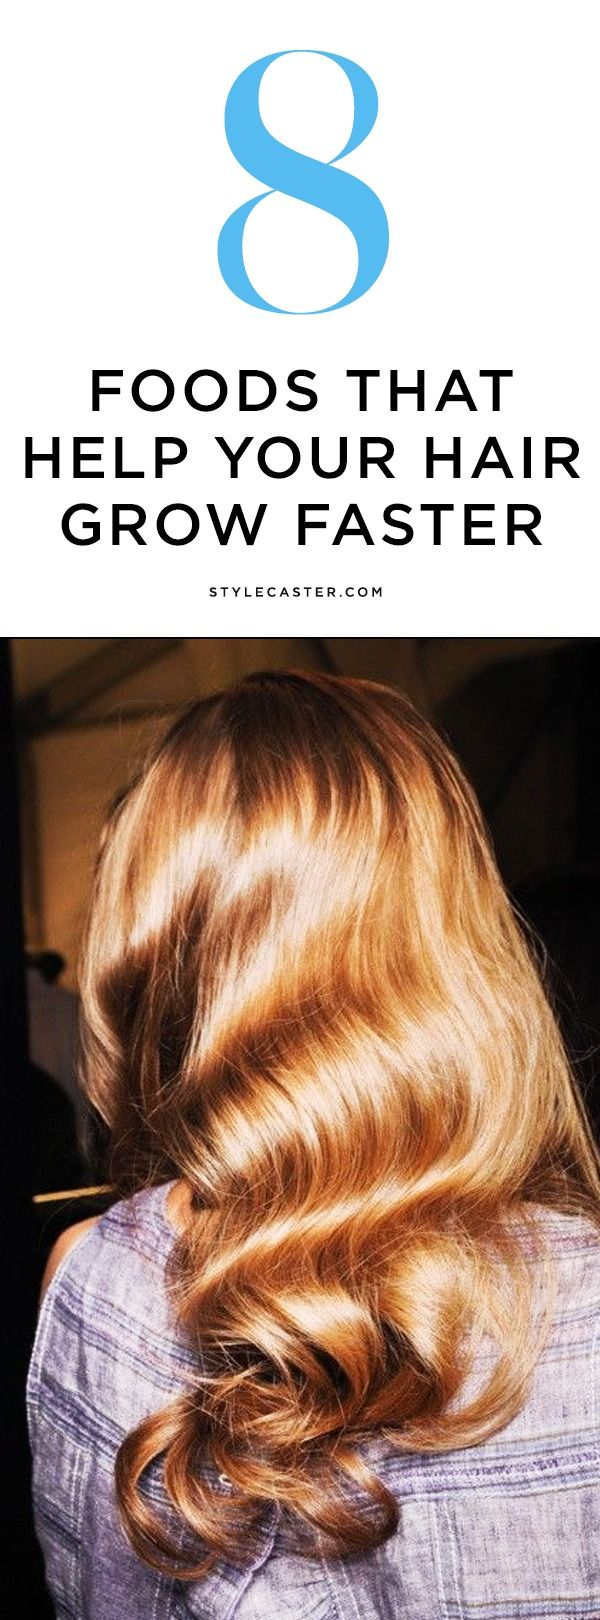 how to make skin grow faster